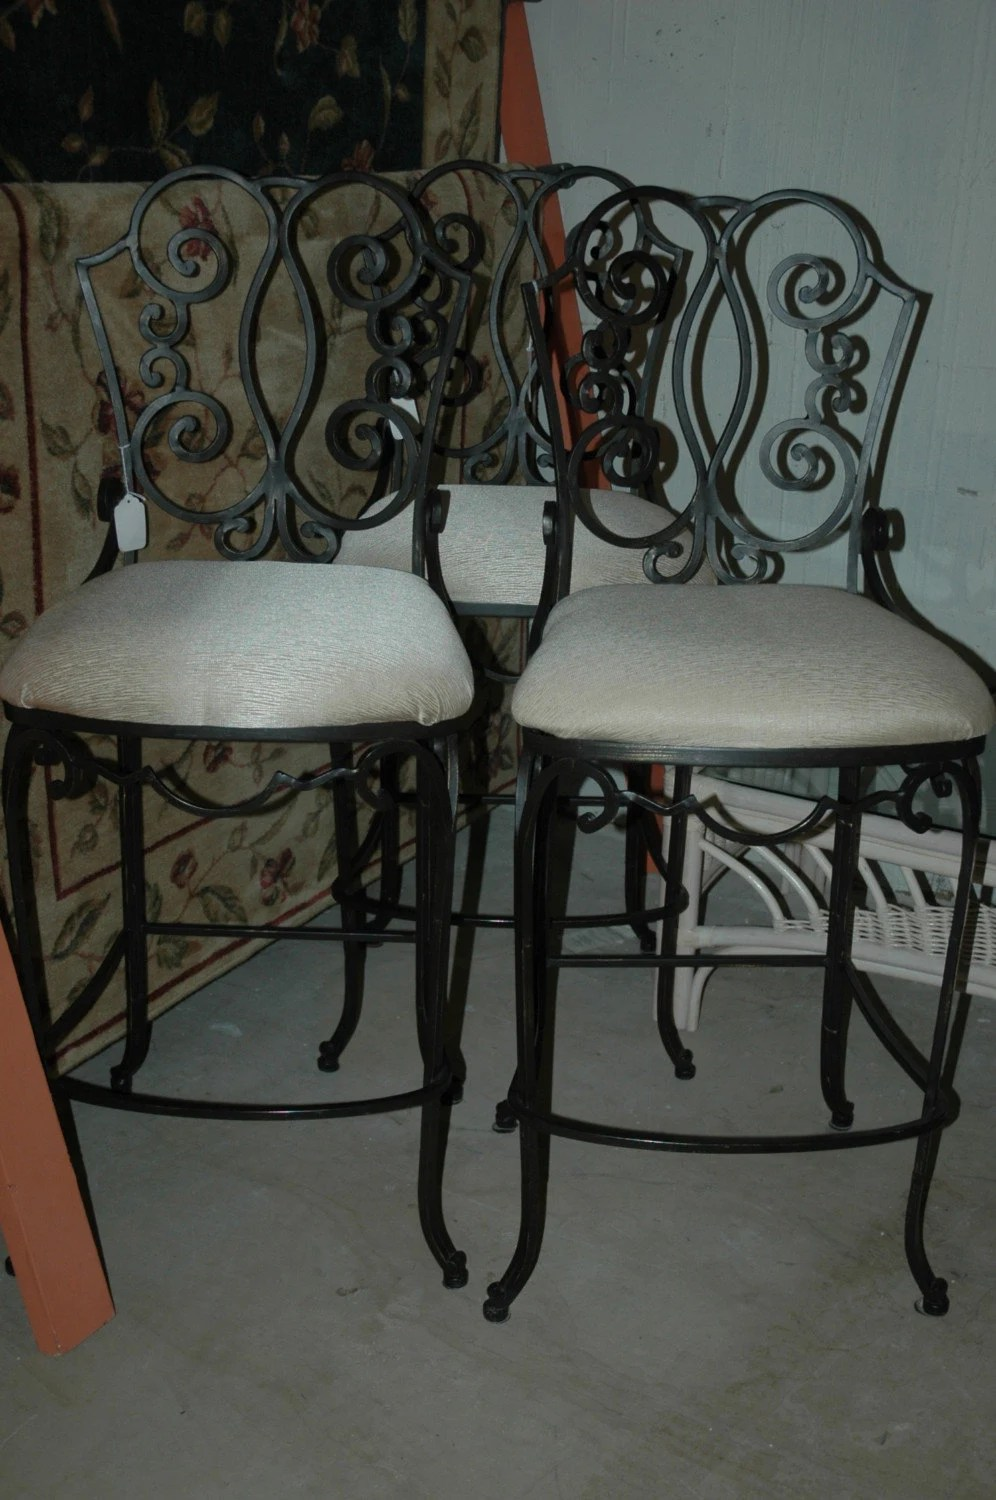 3 scrolled heavy wrought iron bar stools wrought iron kitchen chairs WROUGHT IRON BAR STOOLS ecru color cushions zoom